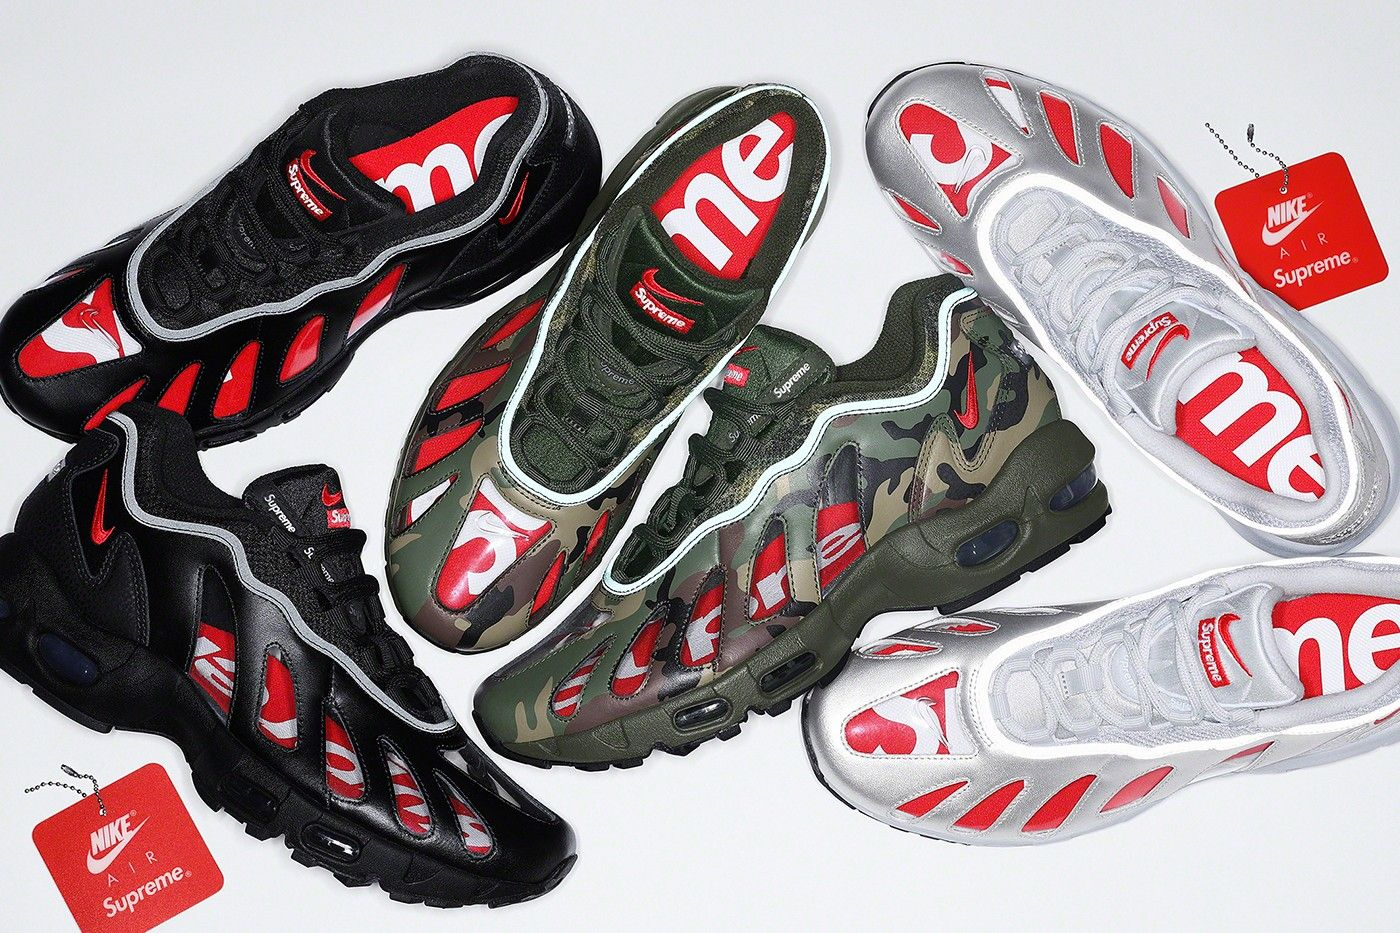 Supreme x Nike Air Max 96 official pics